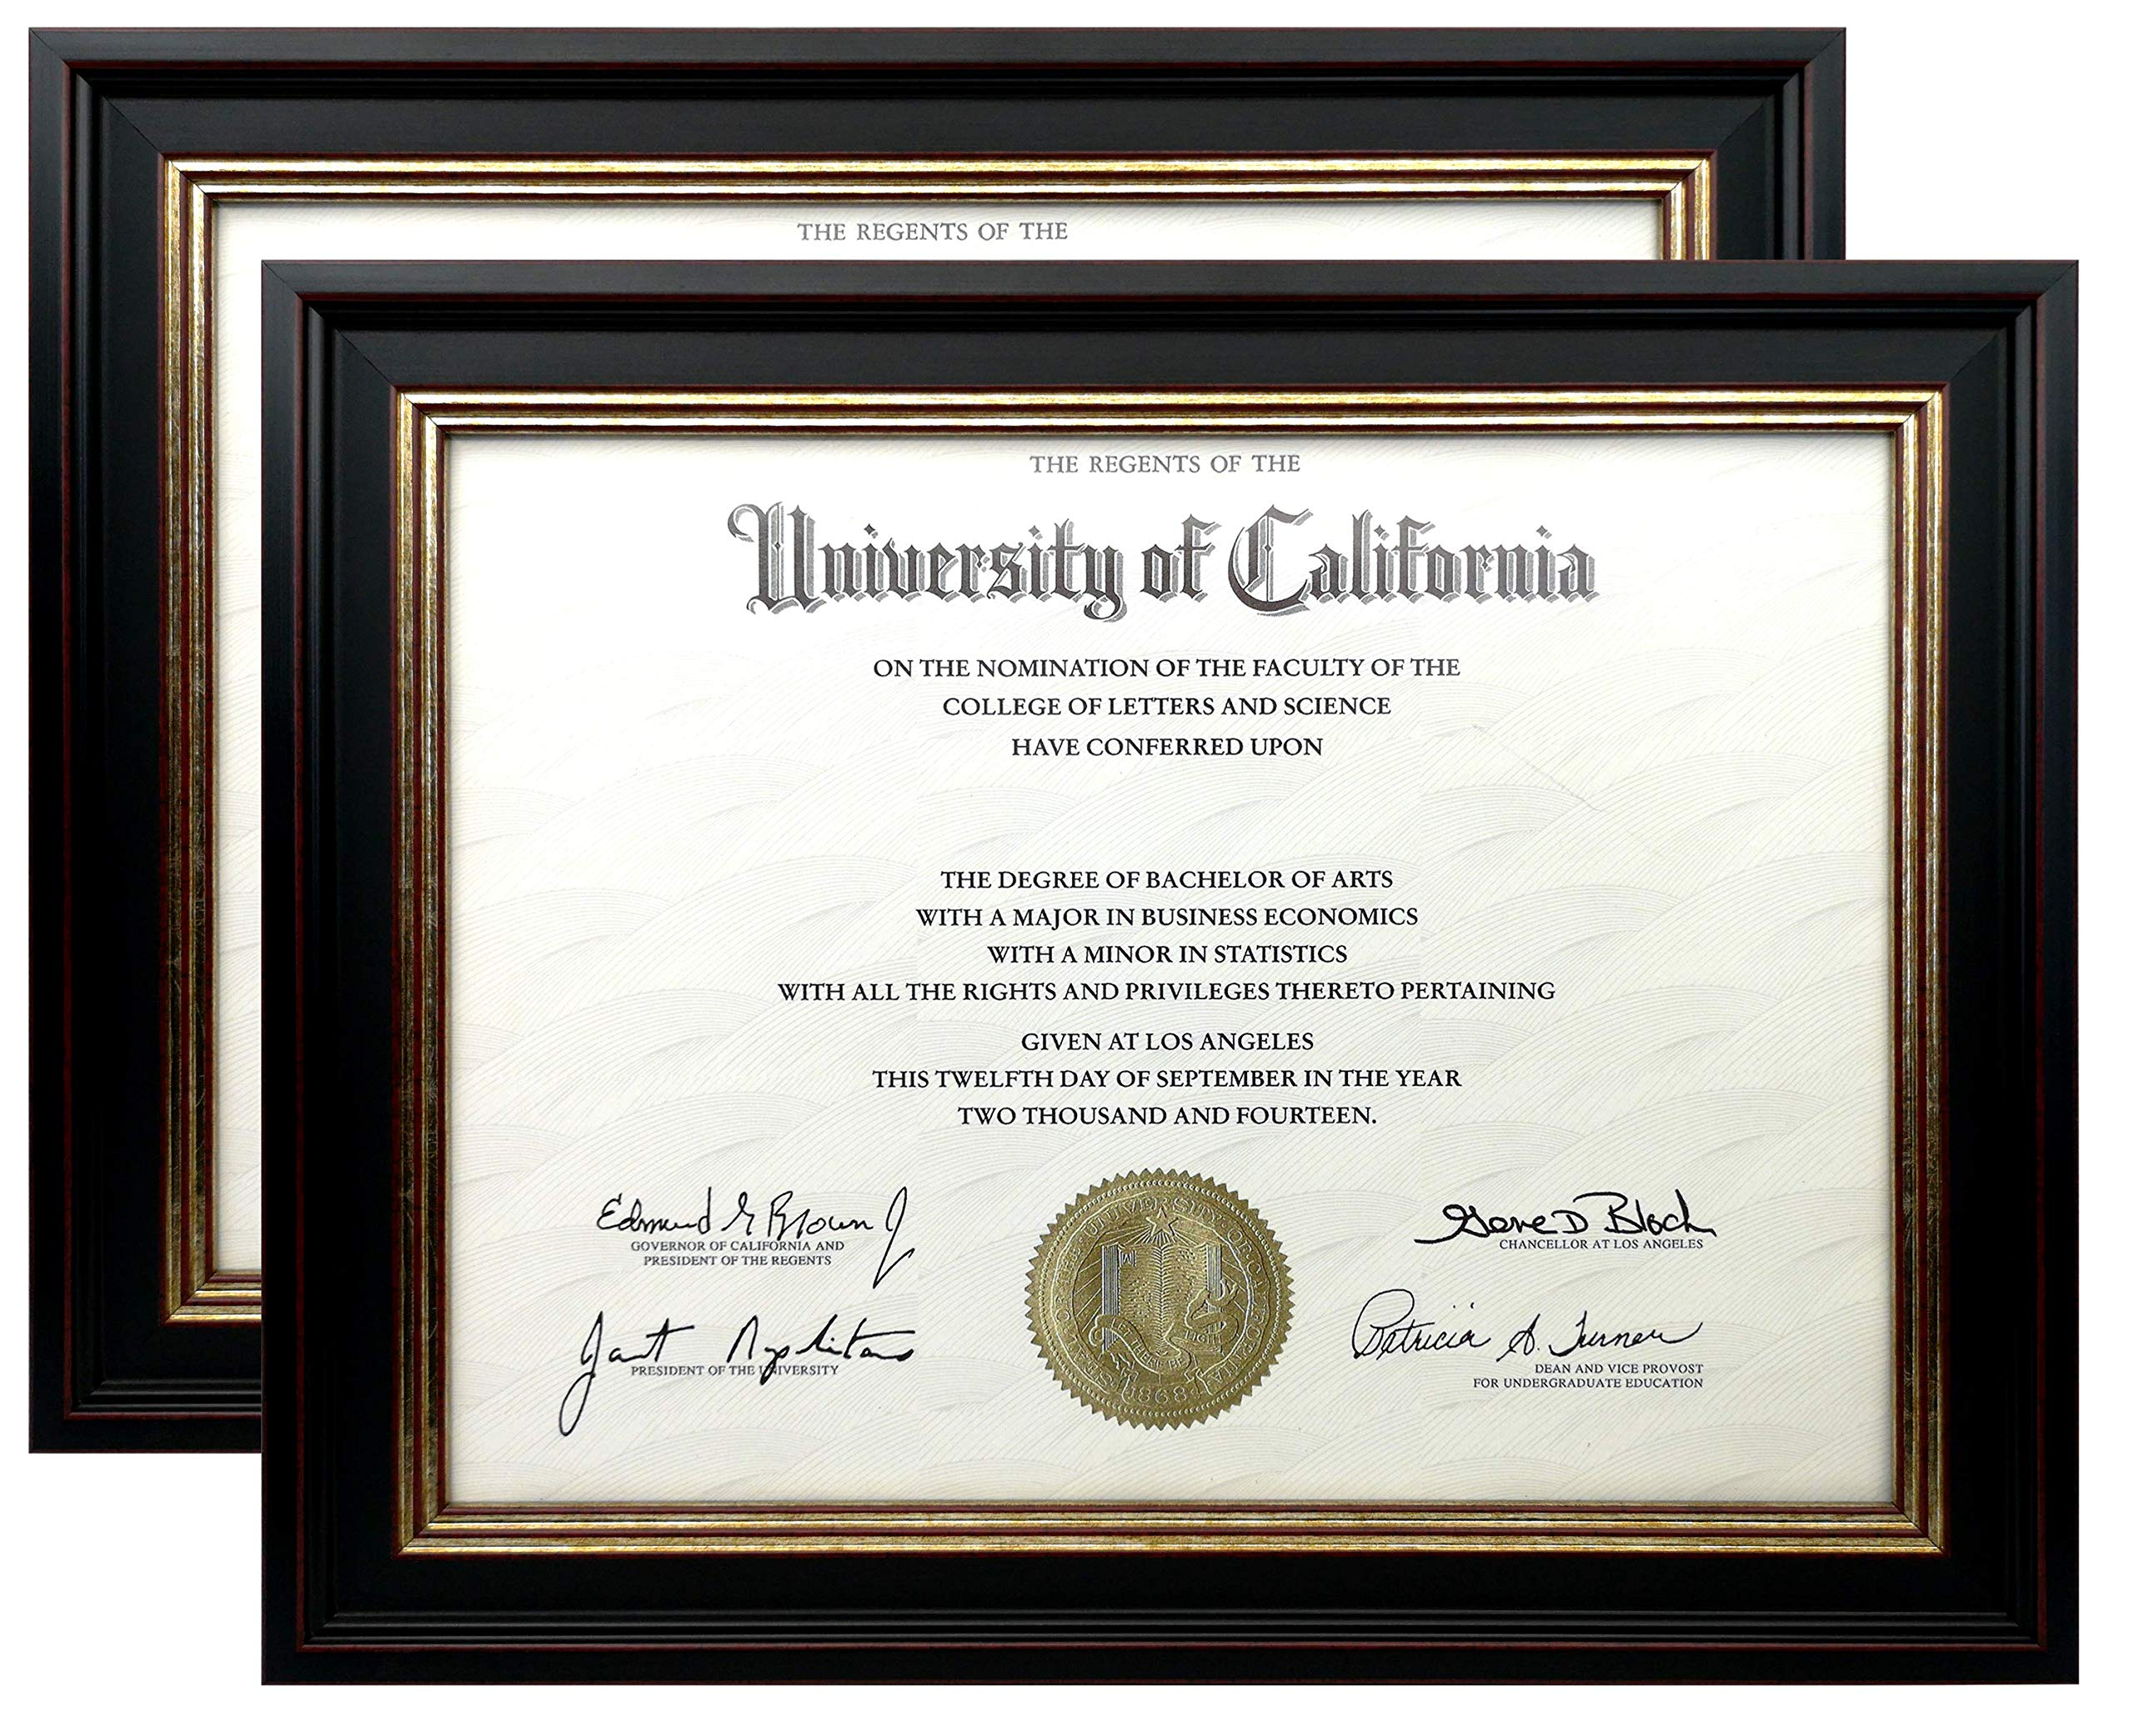 Onuri Inc - Luxurious Document Frame (2-Pack) - Classic 8.5x11 Picture Frame for Diploma Documents and Certificates by Onuri Inc. (Image #1)